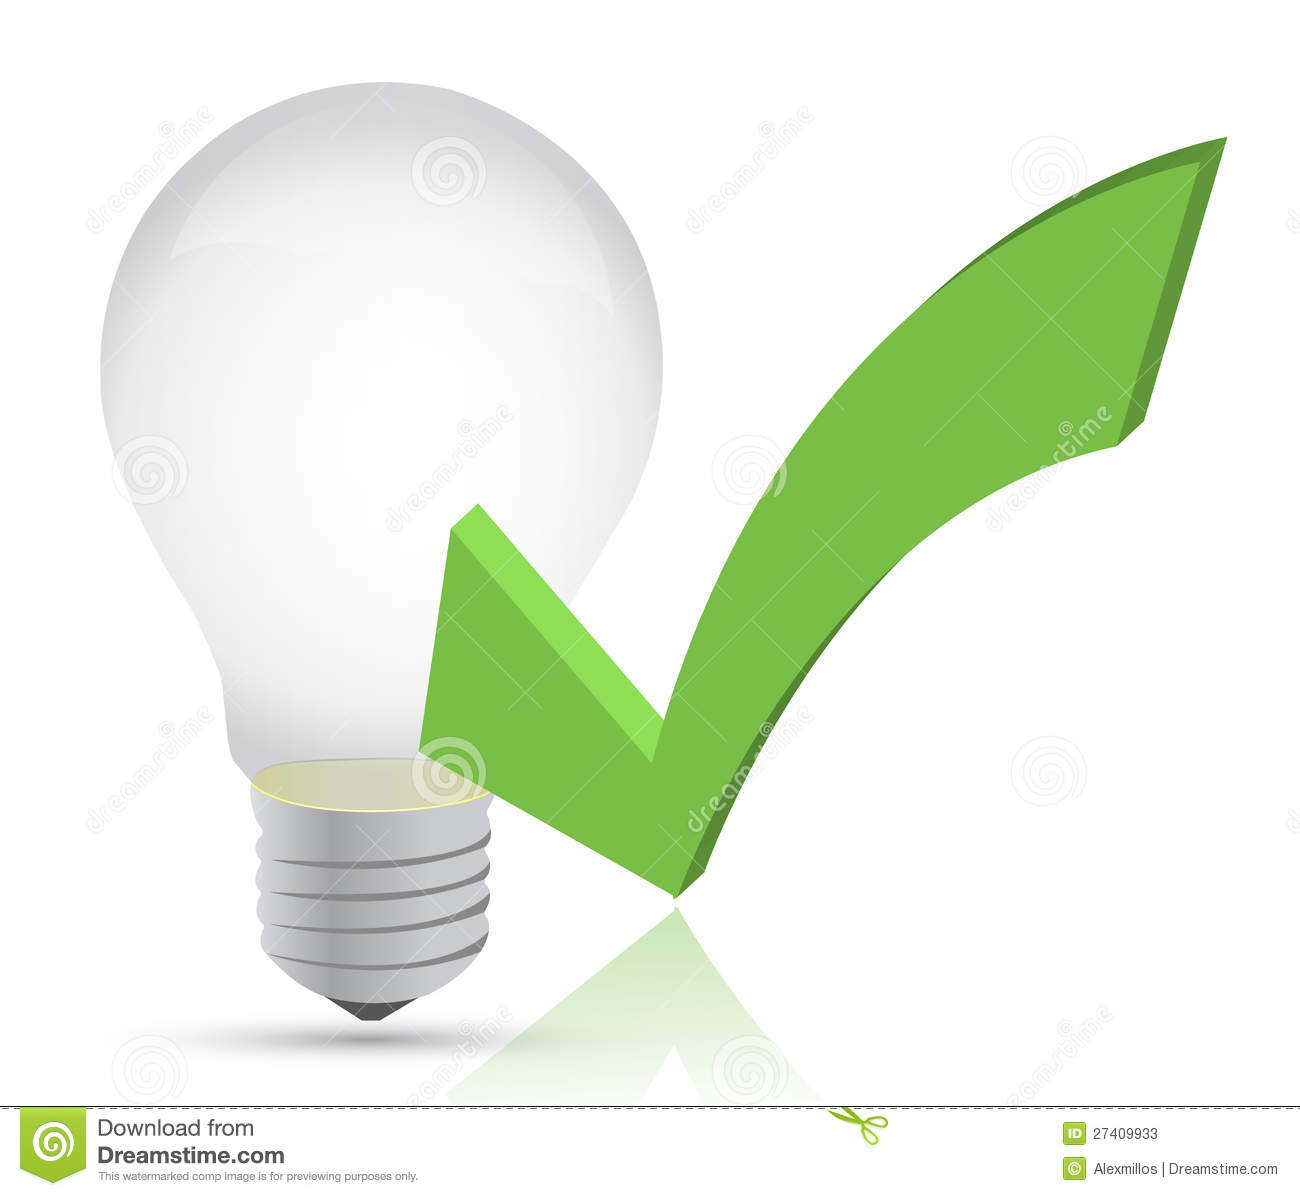 Check Out The Lights Over The: Light Bulb And Check Mark Illustration Stock Photos